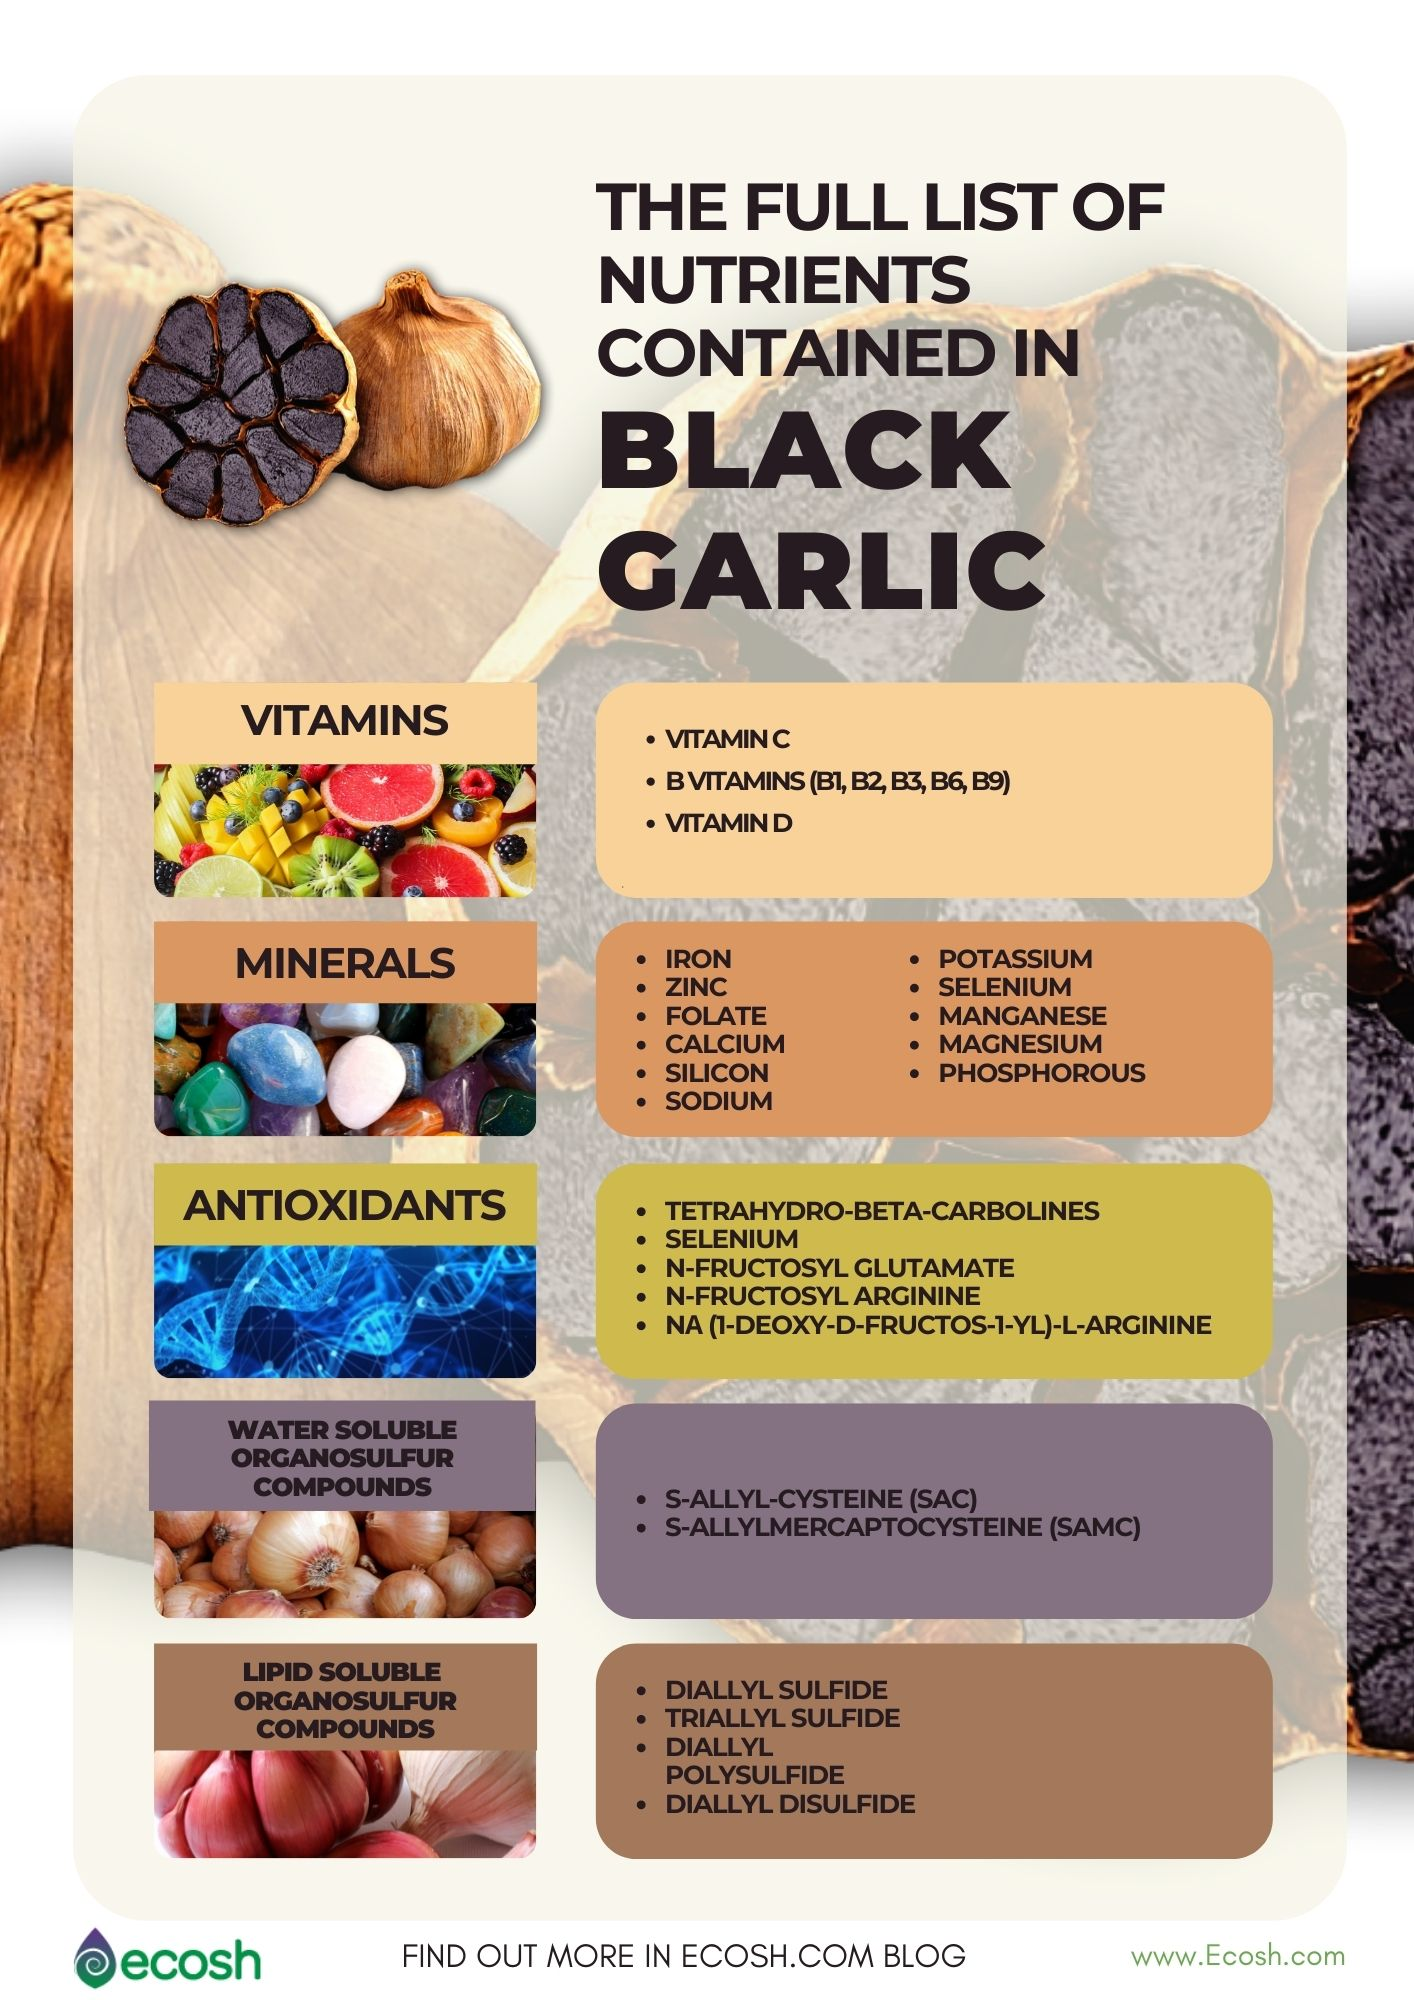 Ecosh_The_Full_List_of_Nutrients_In_Black_Garlic_Vitamins_In_Black_Garlic_Minerals_in_Black_Garlic_Antioxidants_In_Black_Garlic_Black_Garlic_Supplements